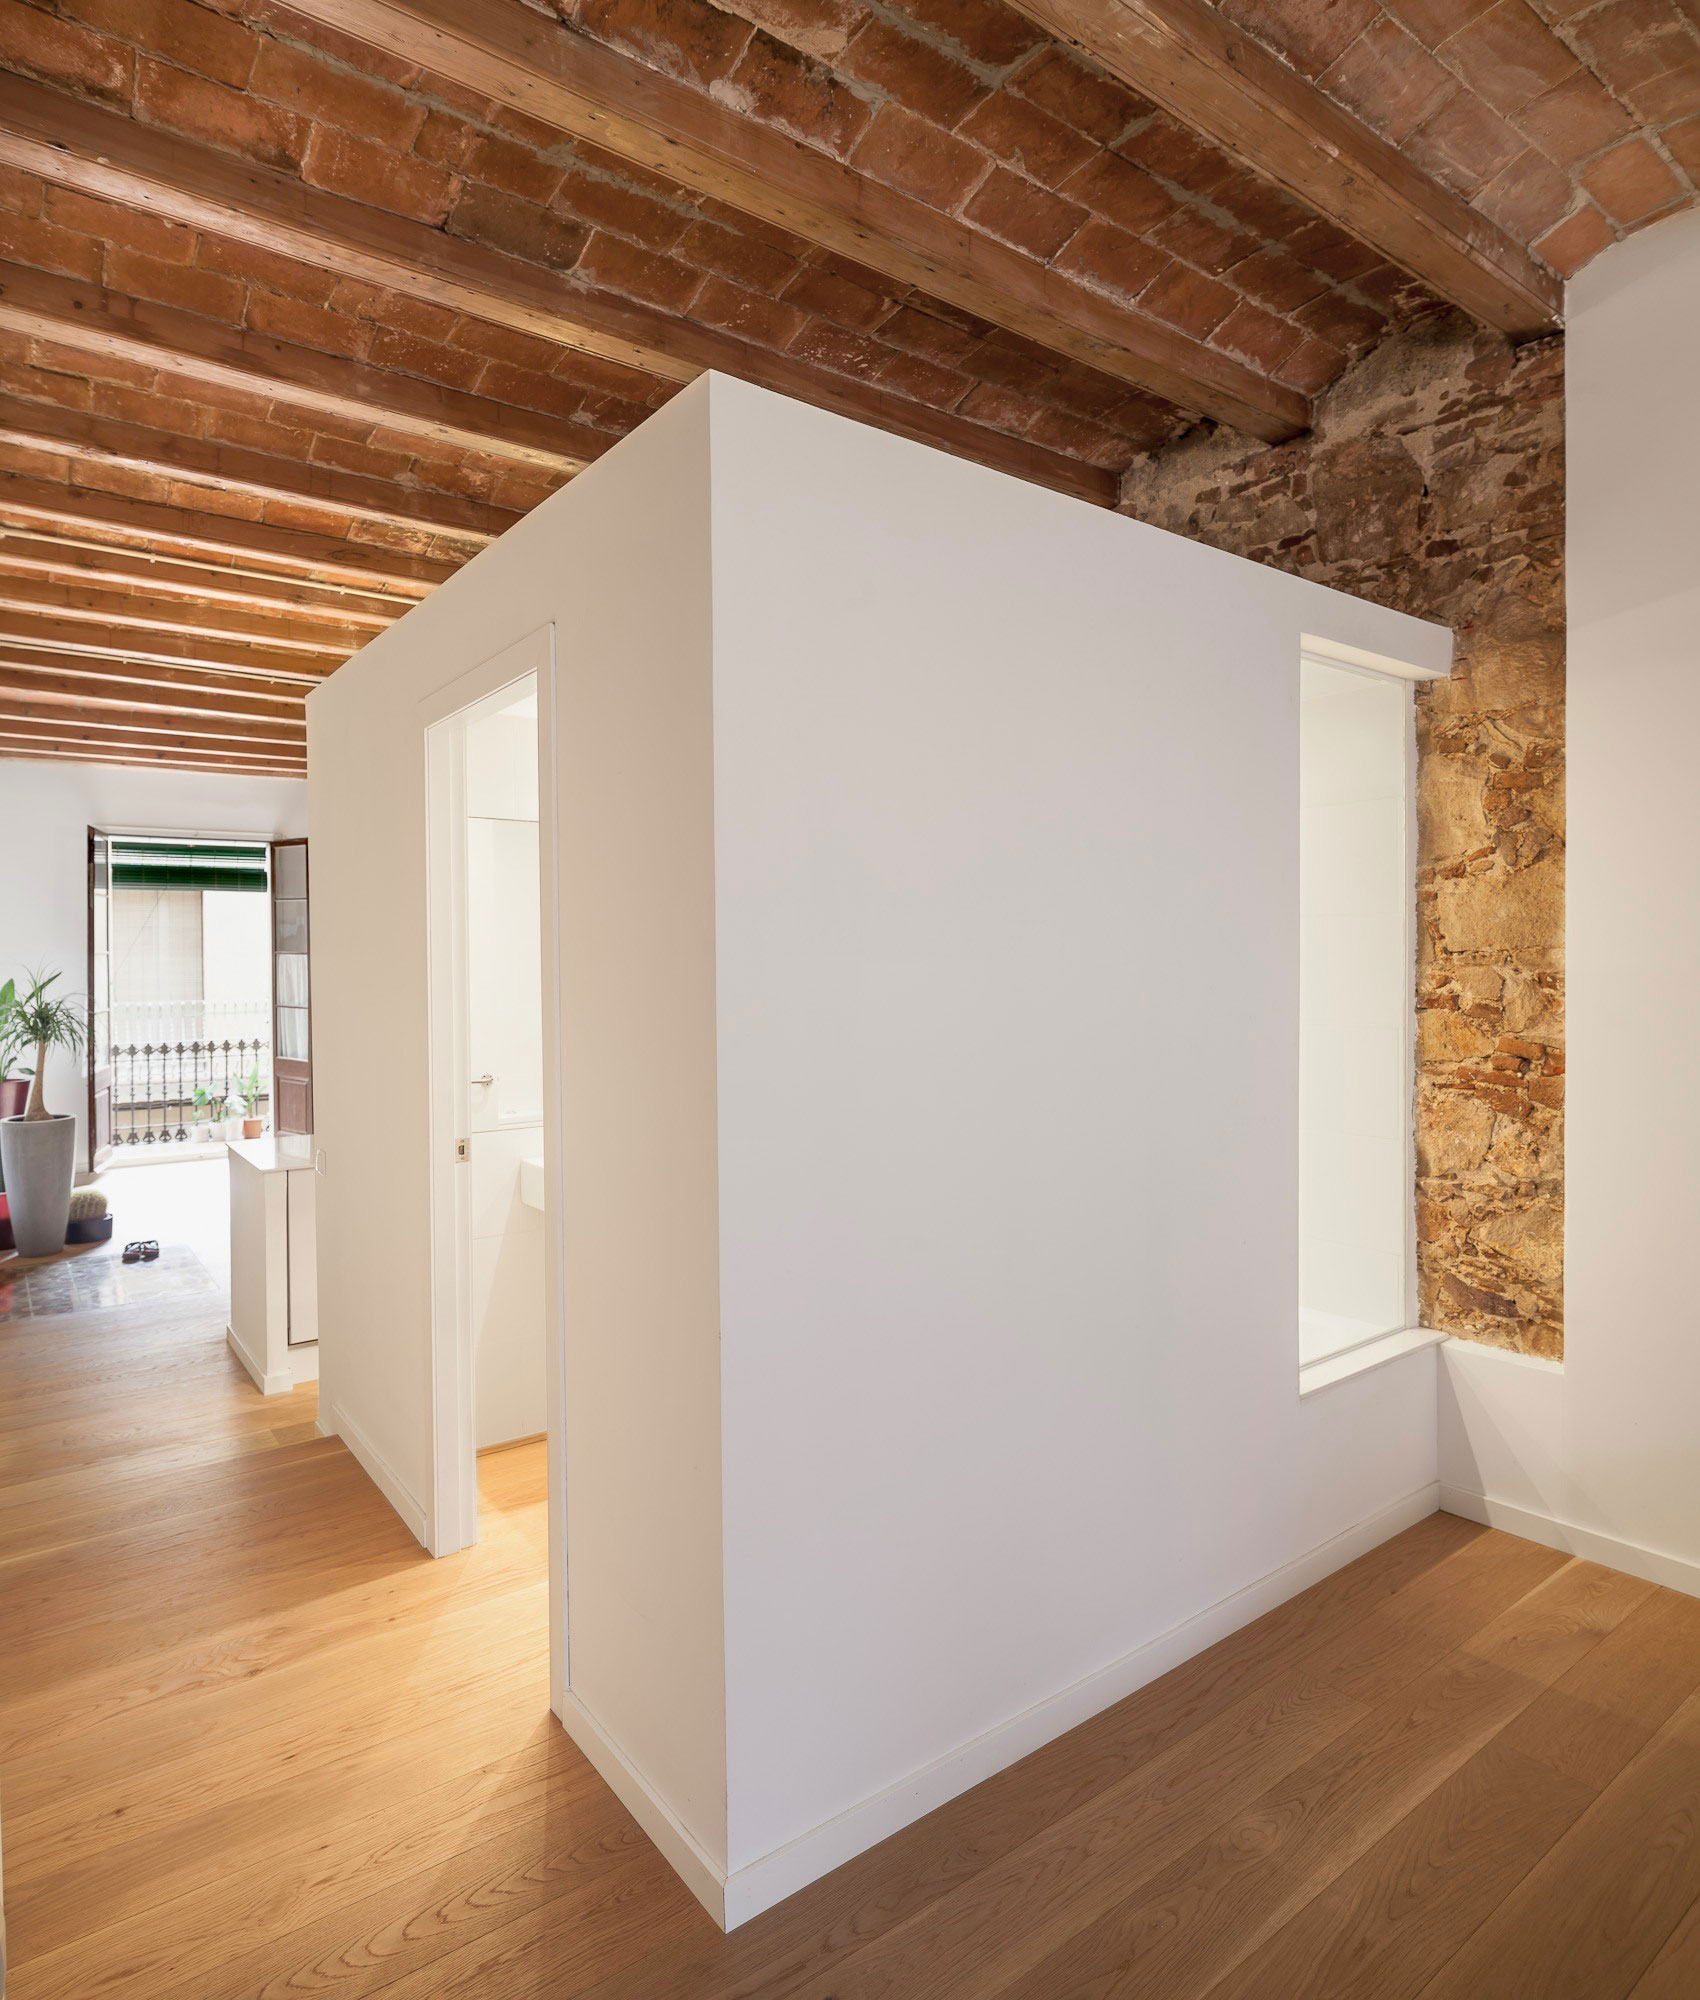 Renovation-Apartment-in-Les-Corts-bathroom-window